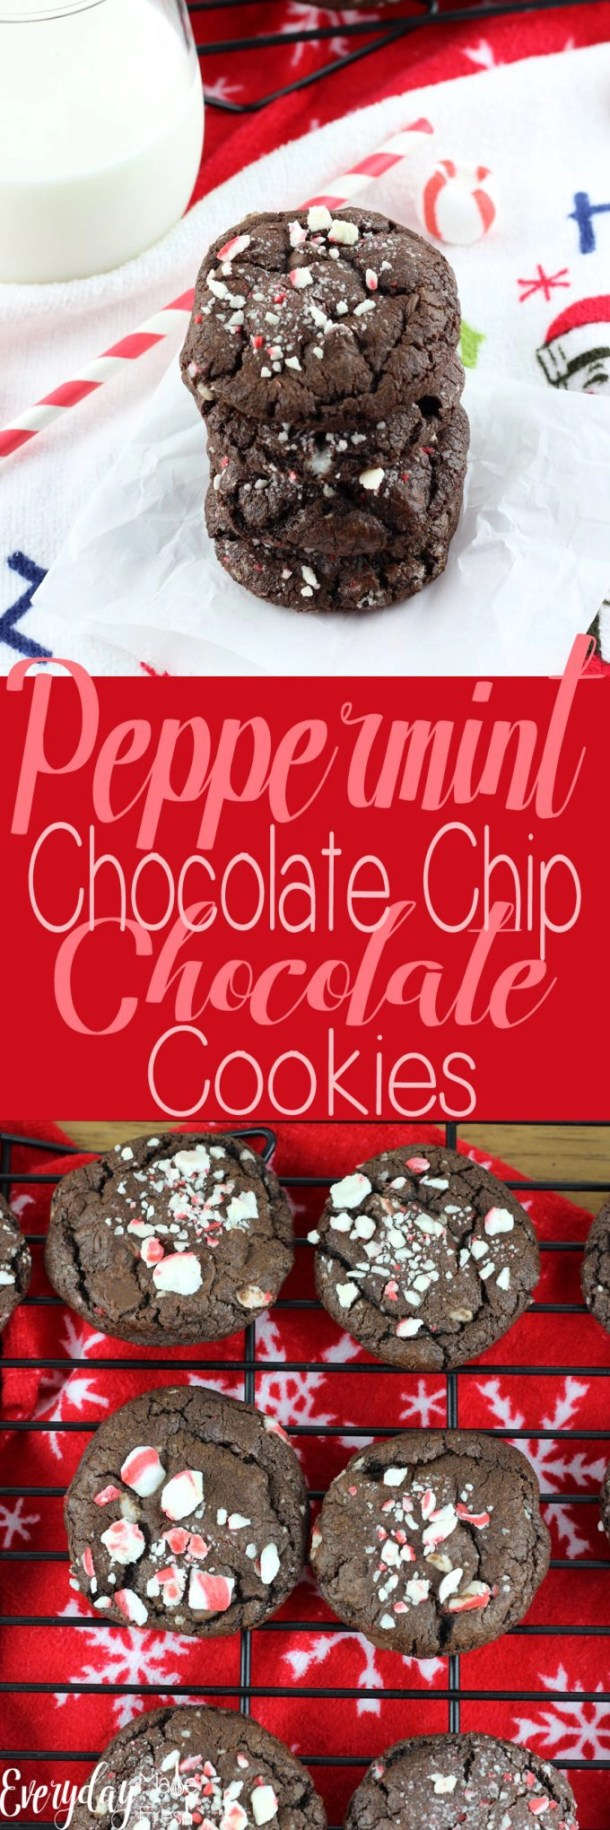 Double the chocolate in these Peppermint Chocolate Chip Chocolate Cookies. Made with soft peppermints, and chocolate on chocolate, these are for the serious mint chocolate lovers! | EverydayMadeFresh.com